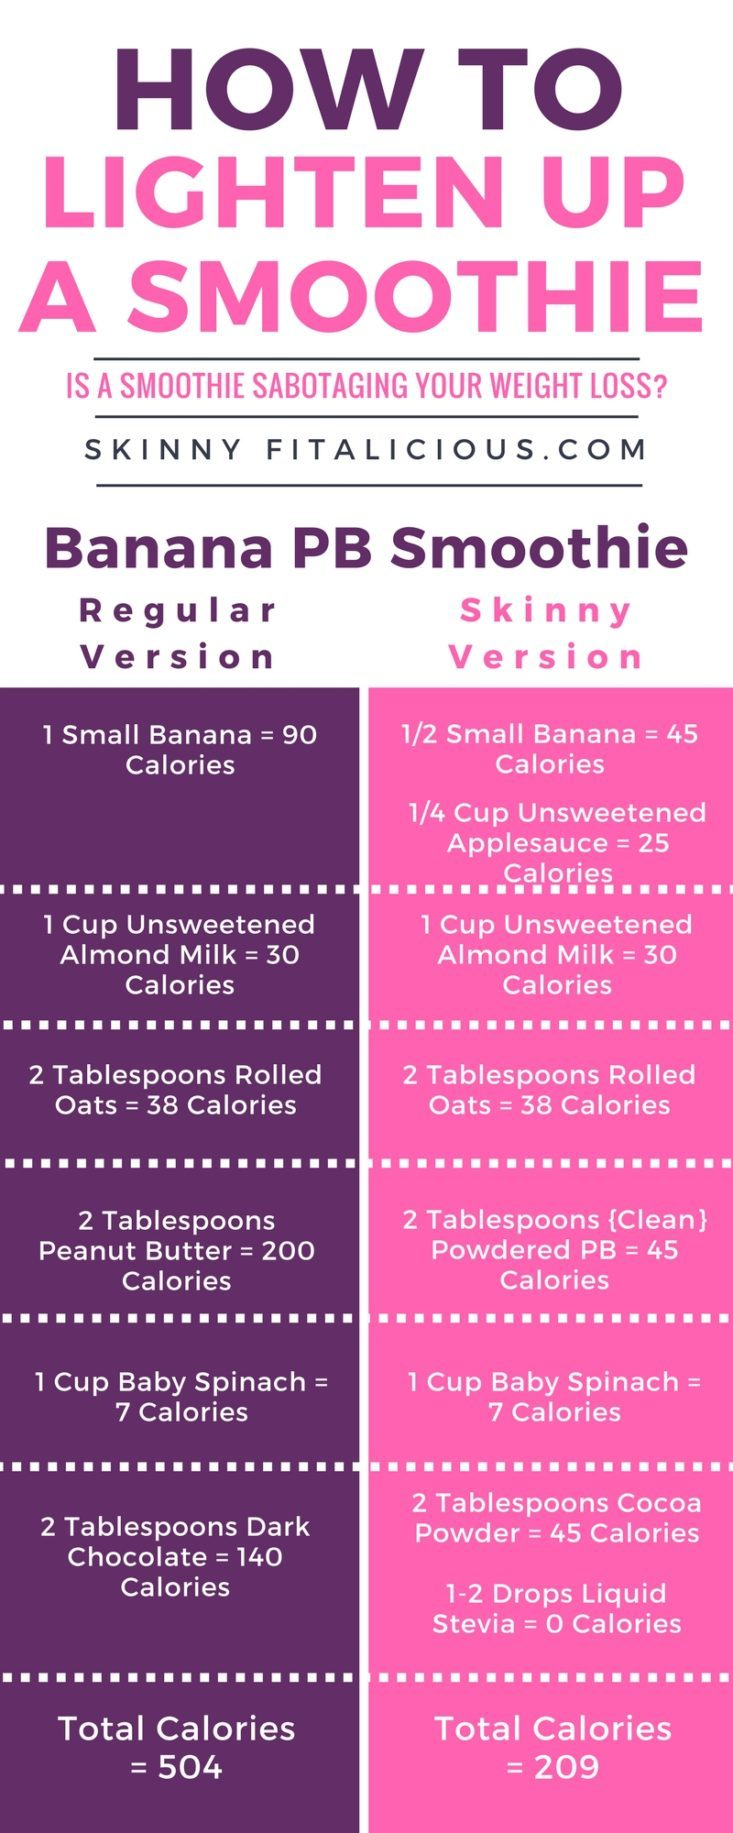 If weight loss is your goal, a smoothie sabotaging your weight loss is likely if you're not watching the ingredients. Here's how to lighten up a smoothie!